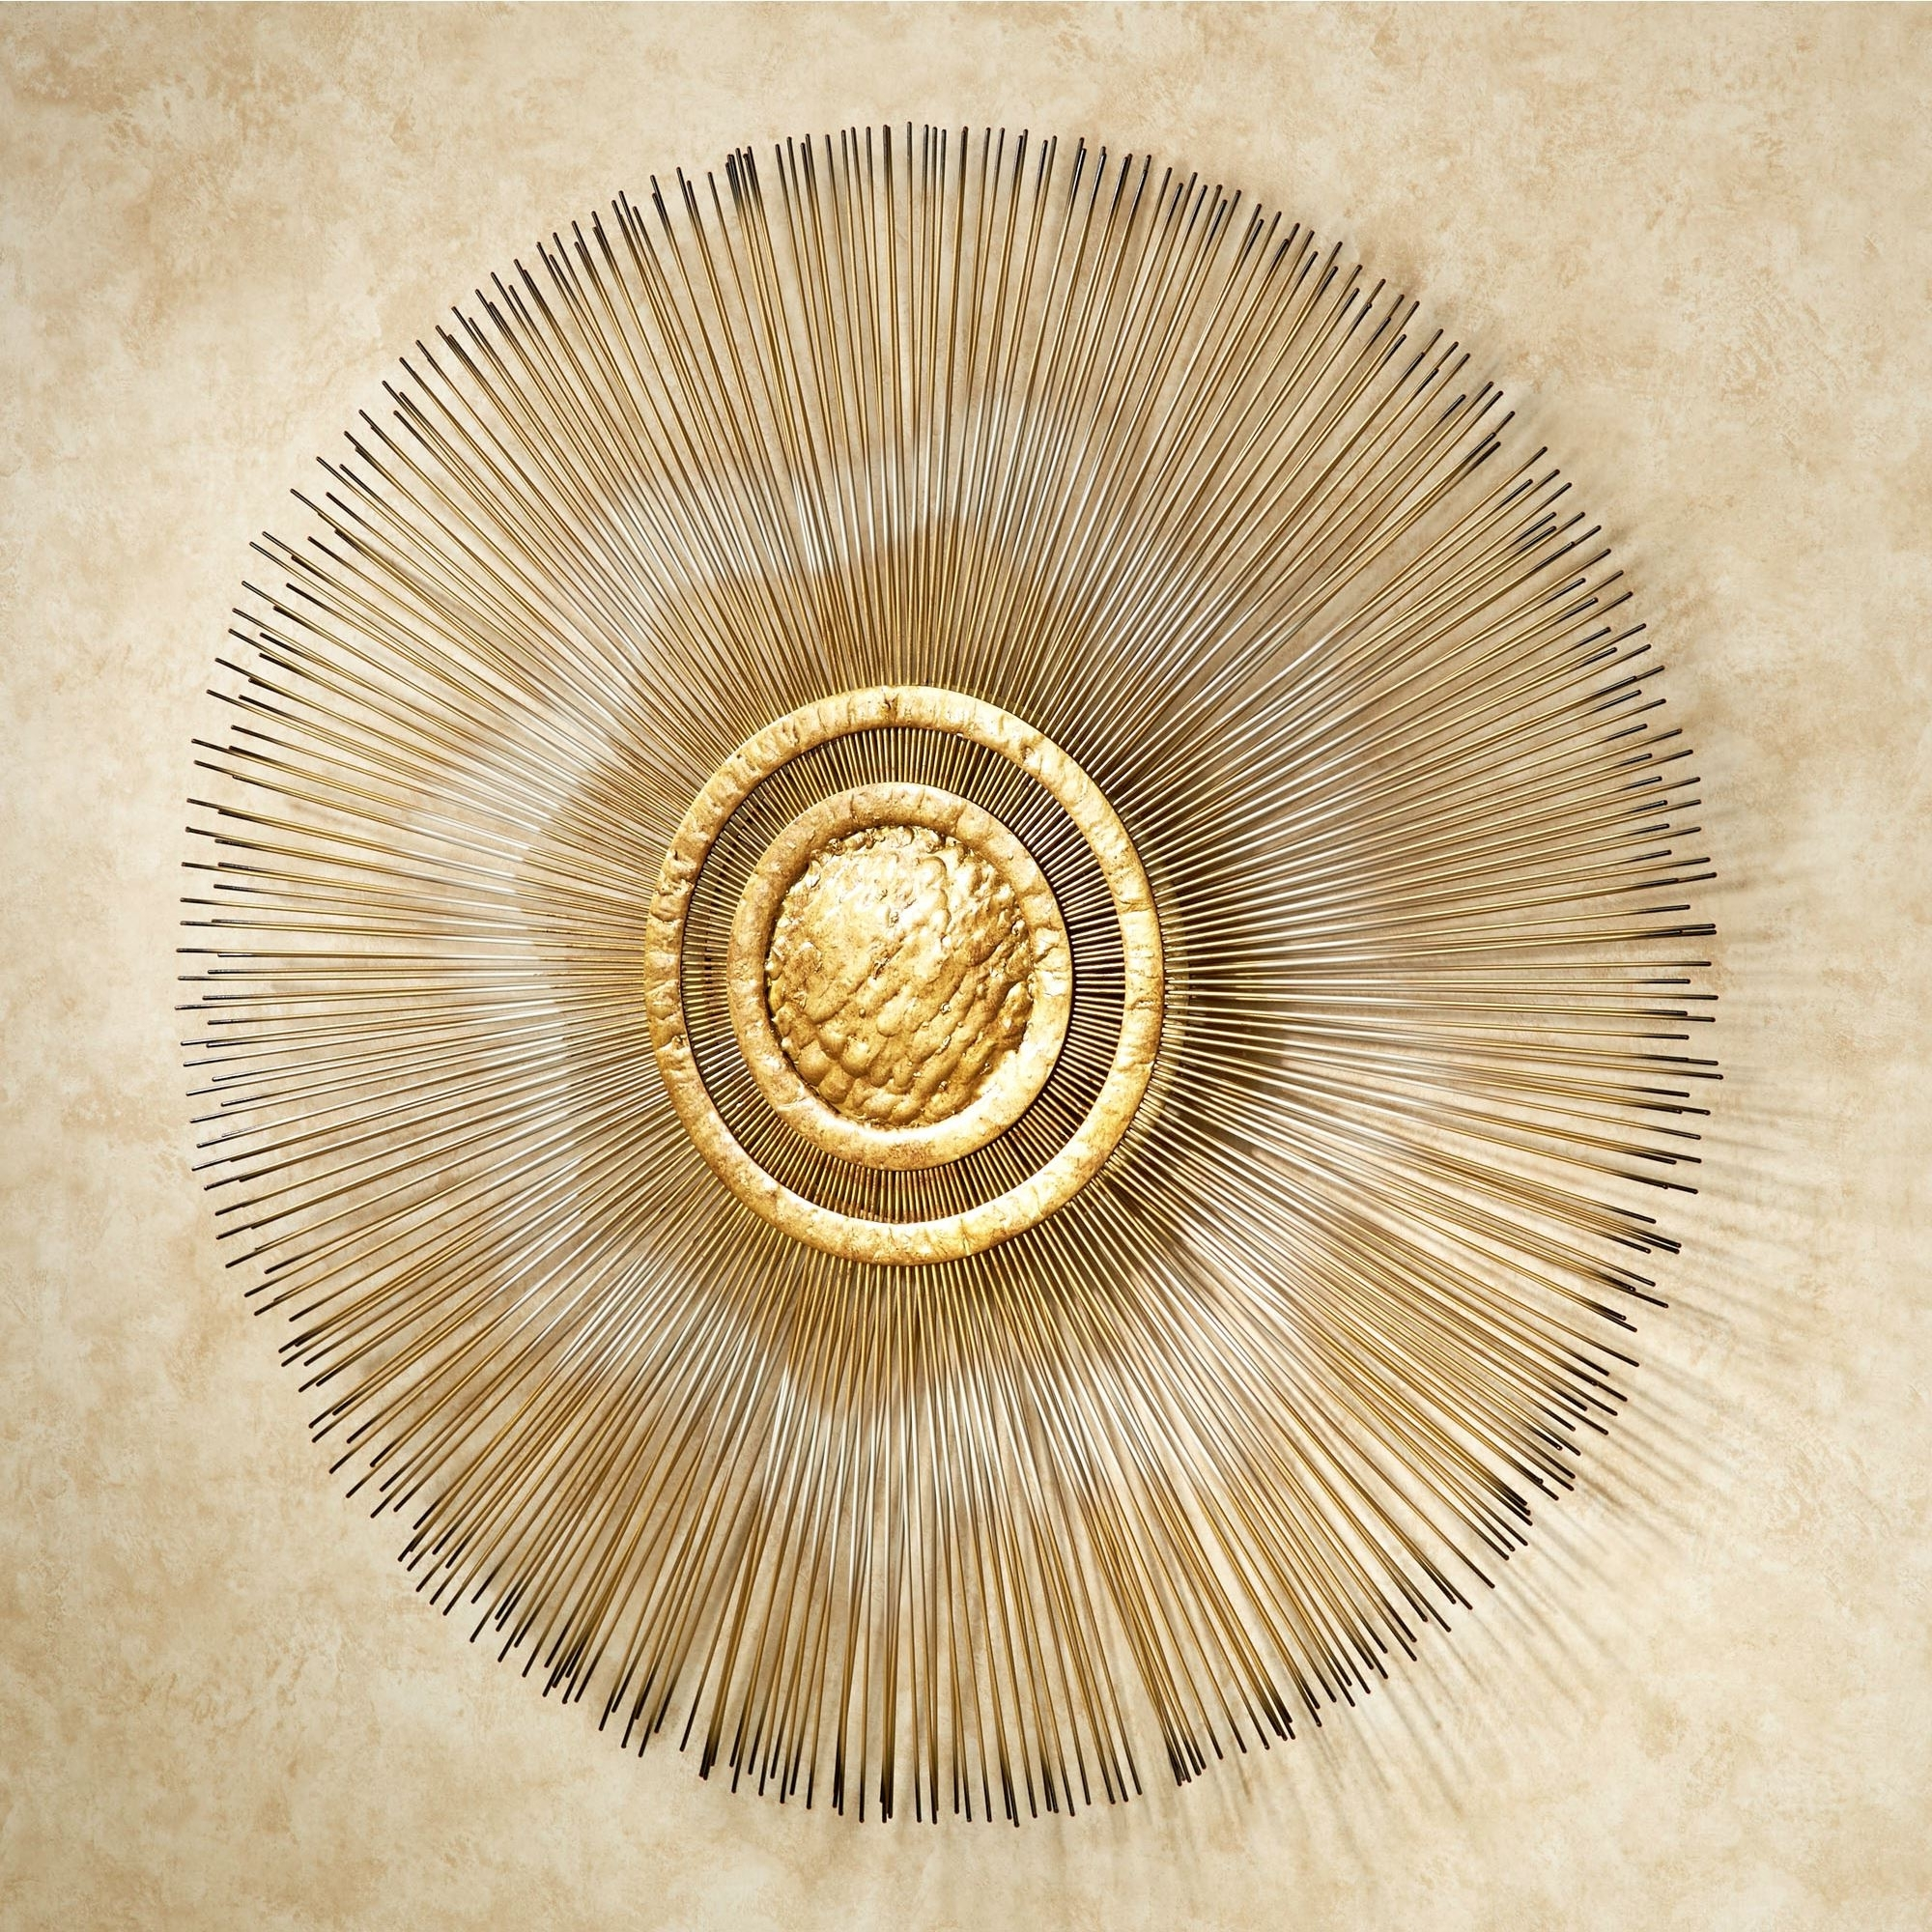 Gold Metal Wall Art Intended For Fashionable Sunburst Metal Wall Sculpturejasonw Studios (View 3 of 15)